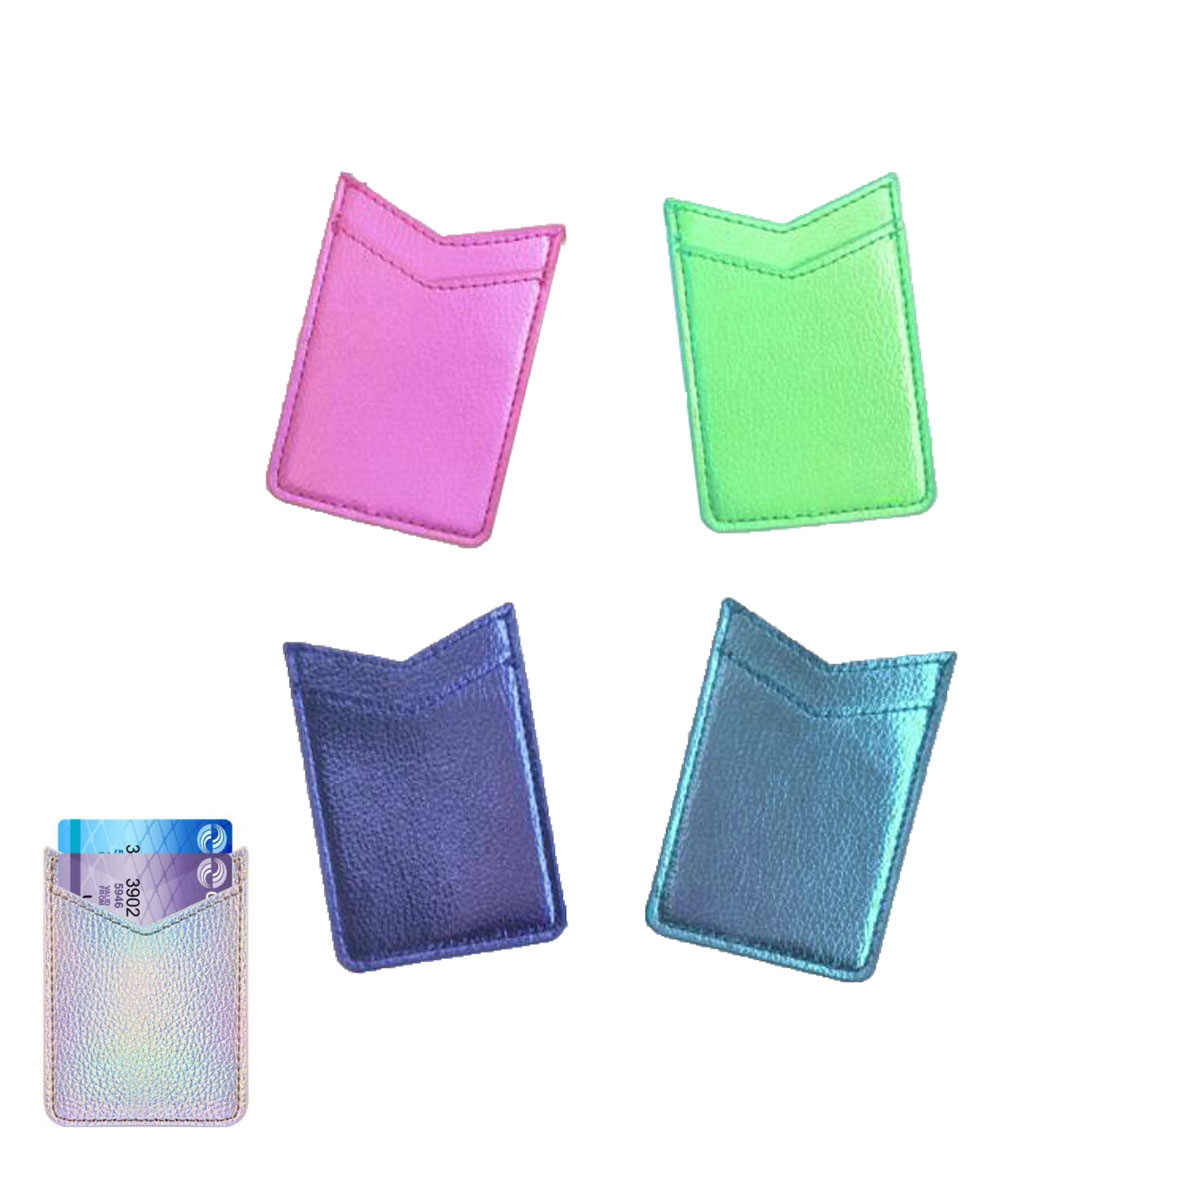 GL-AAA1350 Glitter Leatherete Adhesive Cell Phone Wallet Double Layer